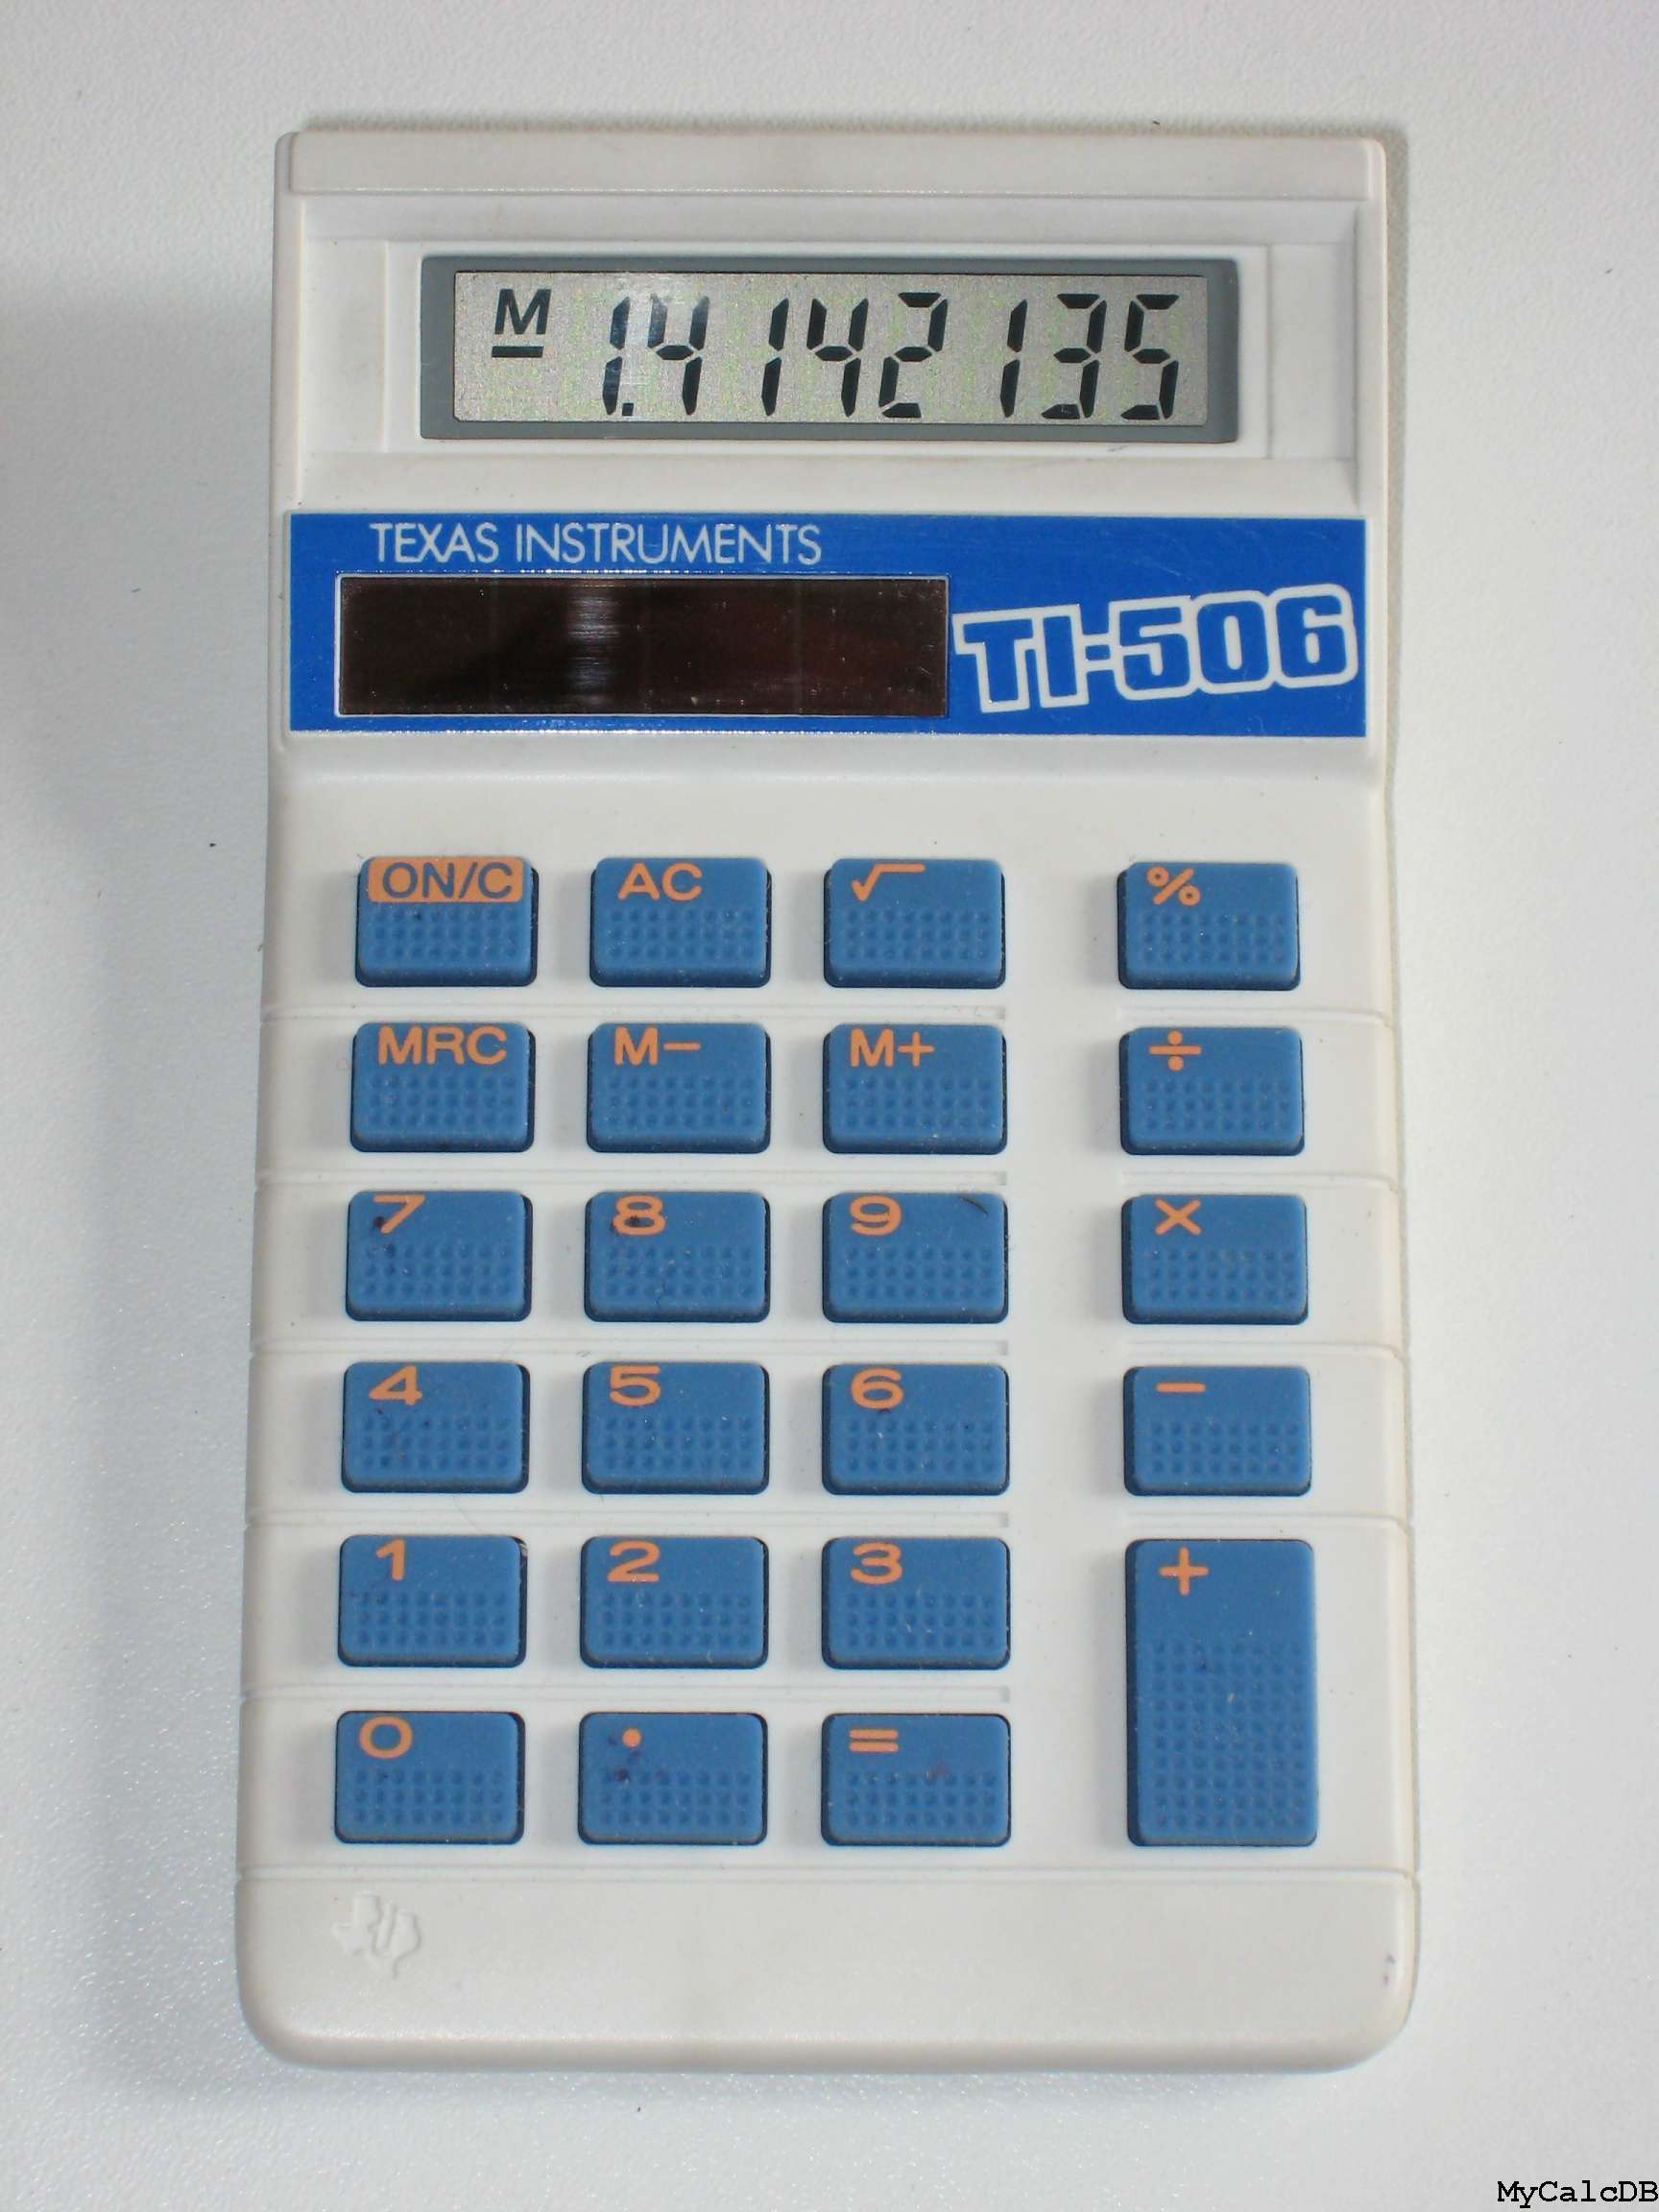 Texas Instruments TI-506